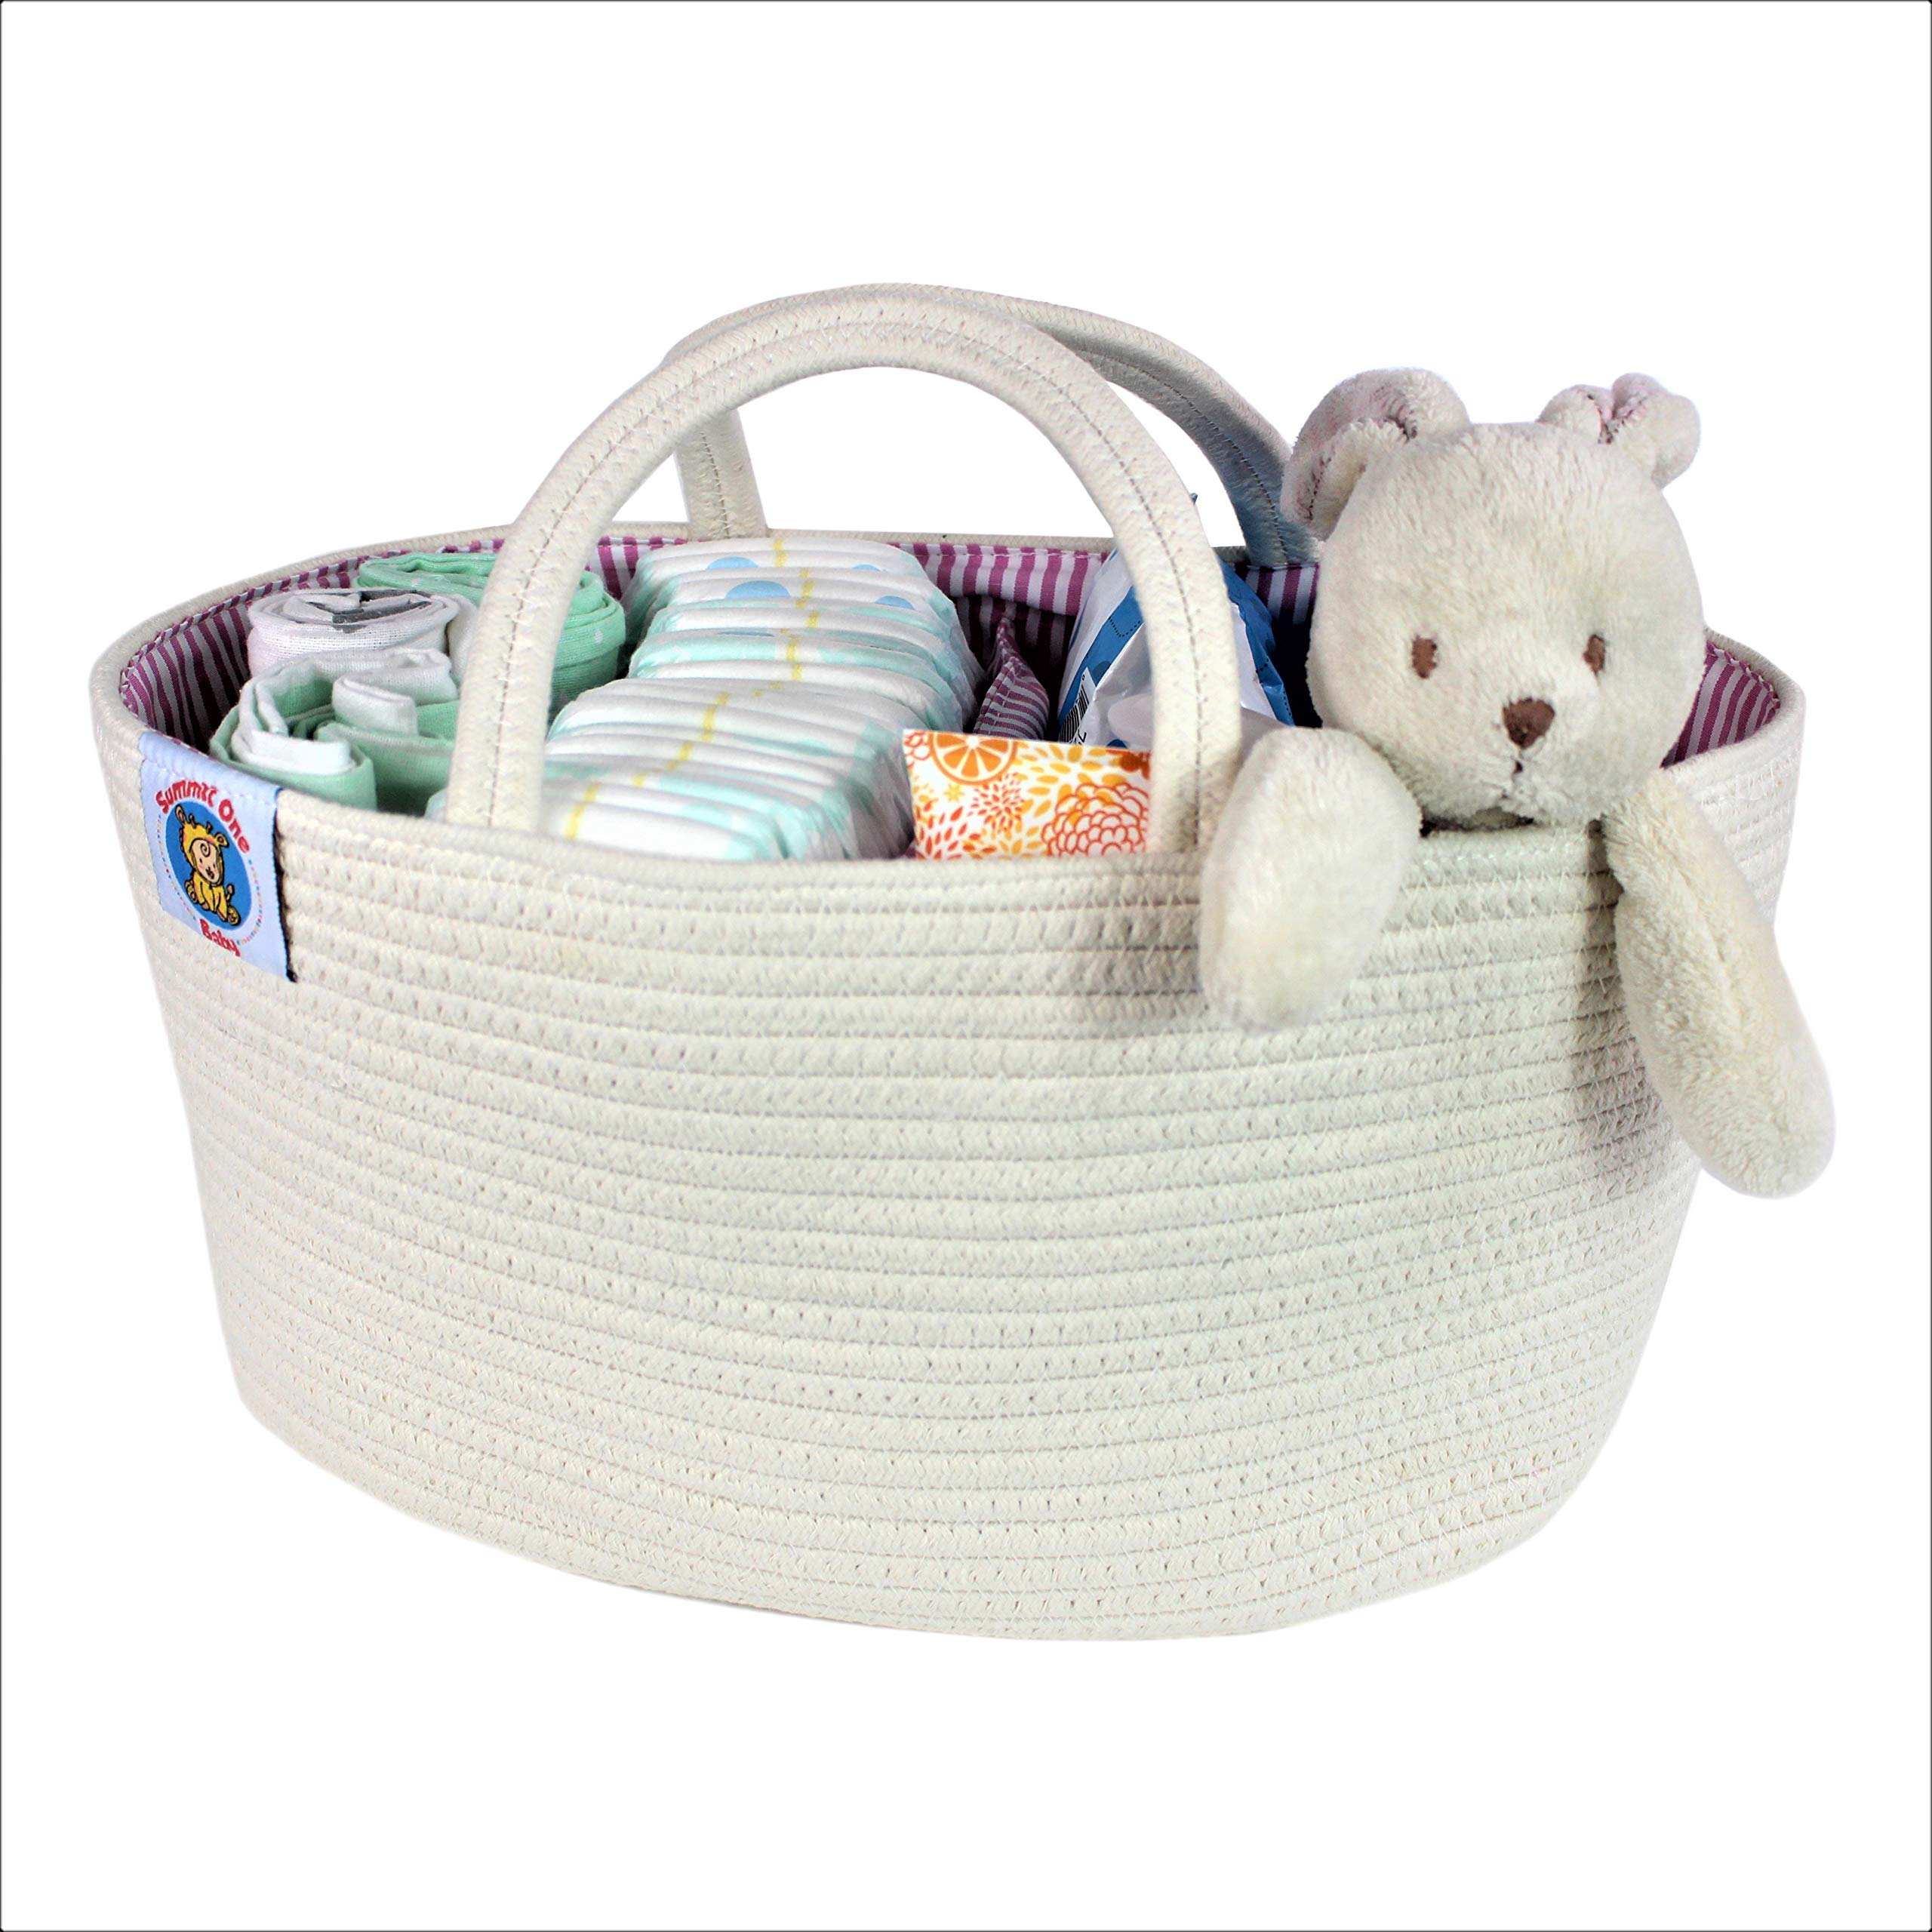 Summit One Baby Extra Large Diaper Caddy Organizer Basket (17 x 10 x 8 Inches) Spacious and Sturdy Woven Cotton Rope Diaper Storage with Handles - Includes Diaper Changing Pad